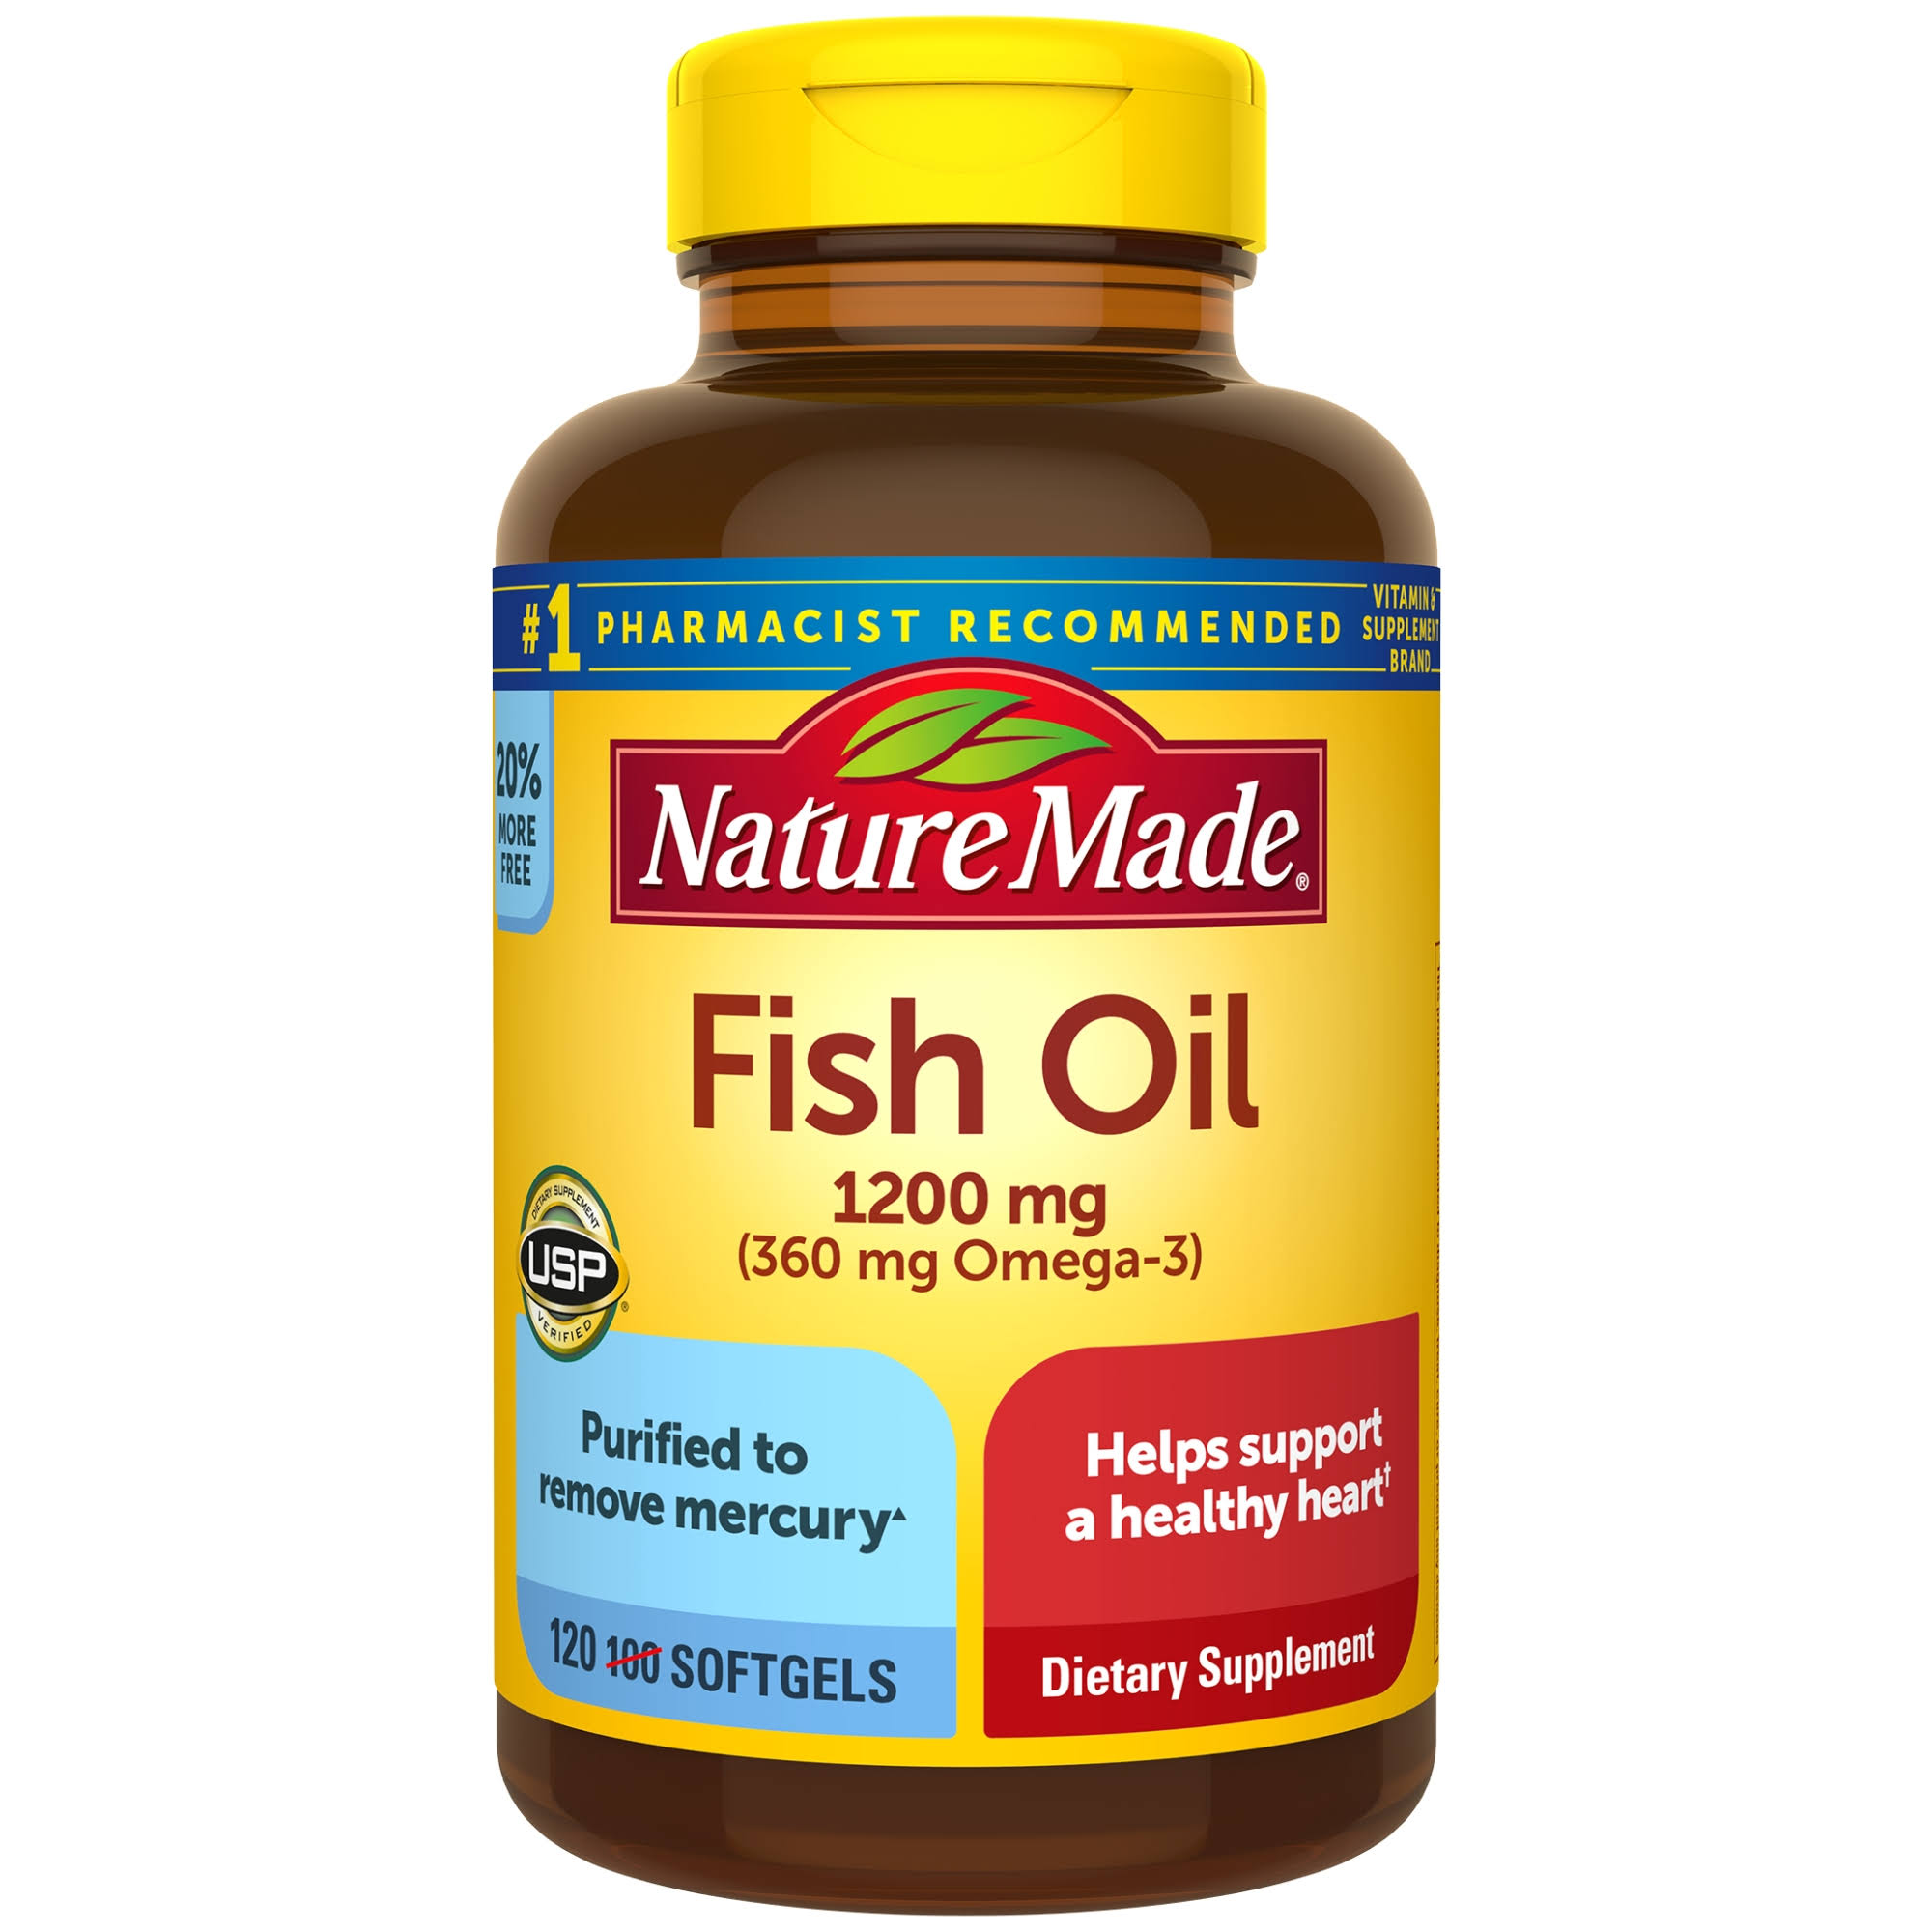 Nature Made Fish Oil Omega-3 Diet Supplement - 1200mg, 100ct